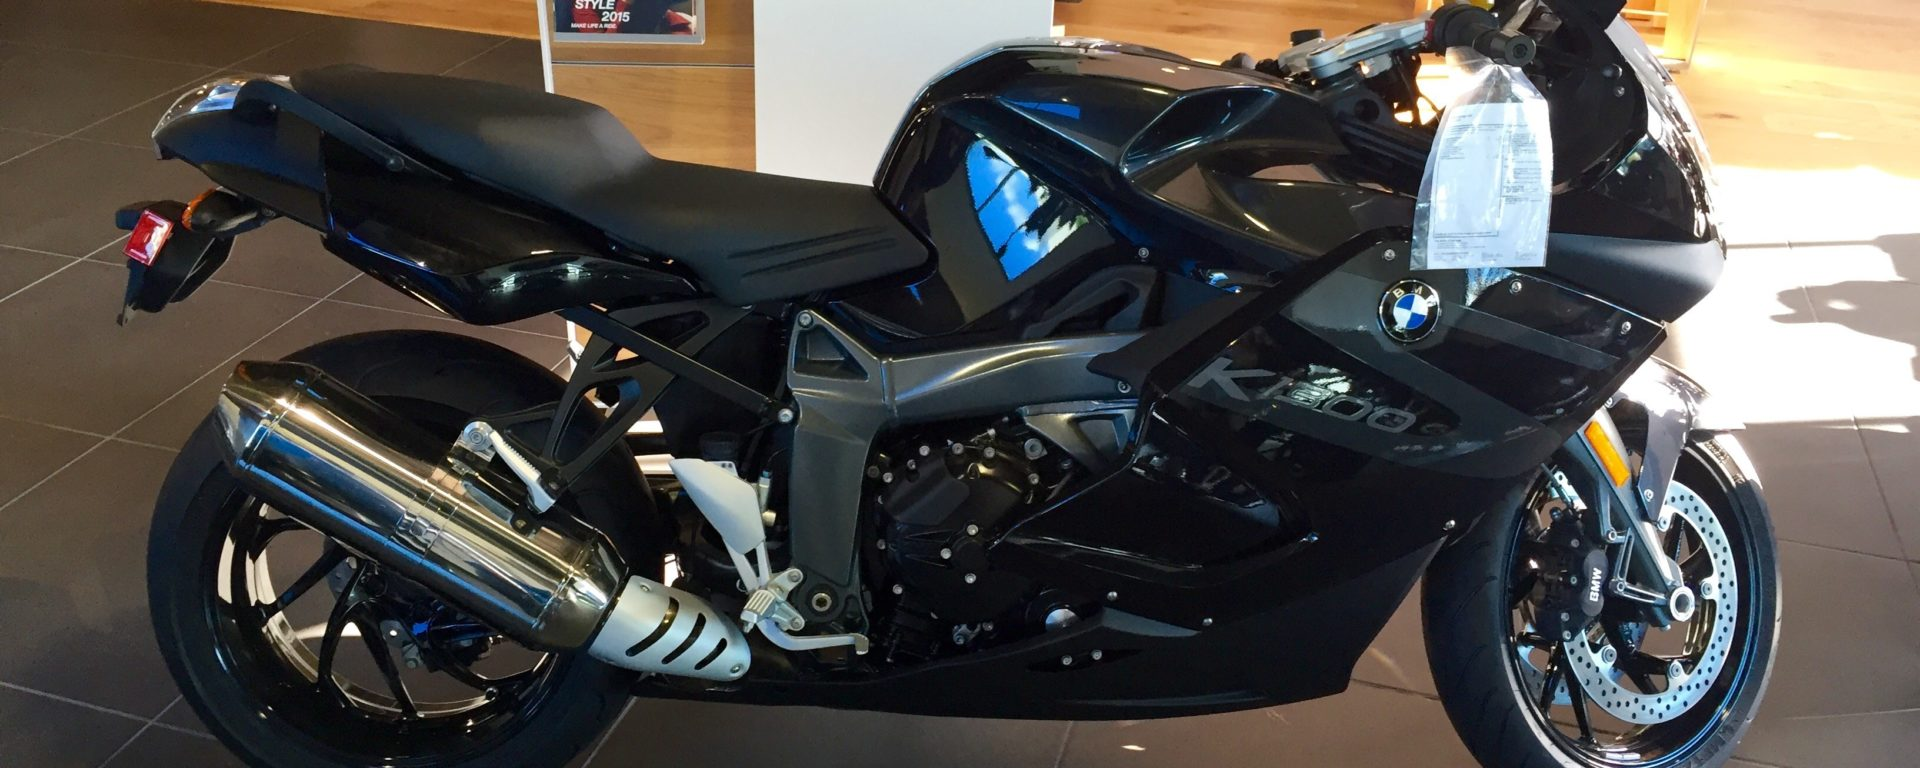 2015 Bmw K1300s Motorcycle One Of The Last Free Time